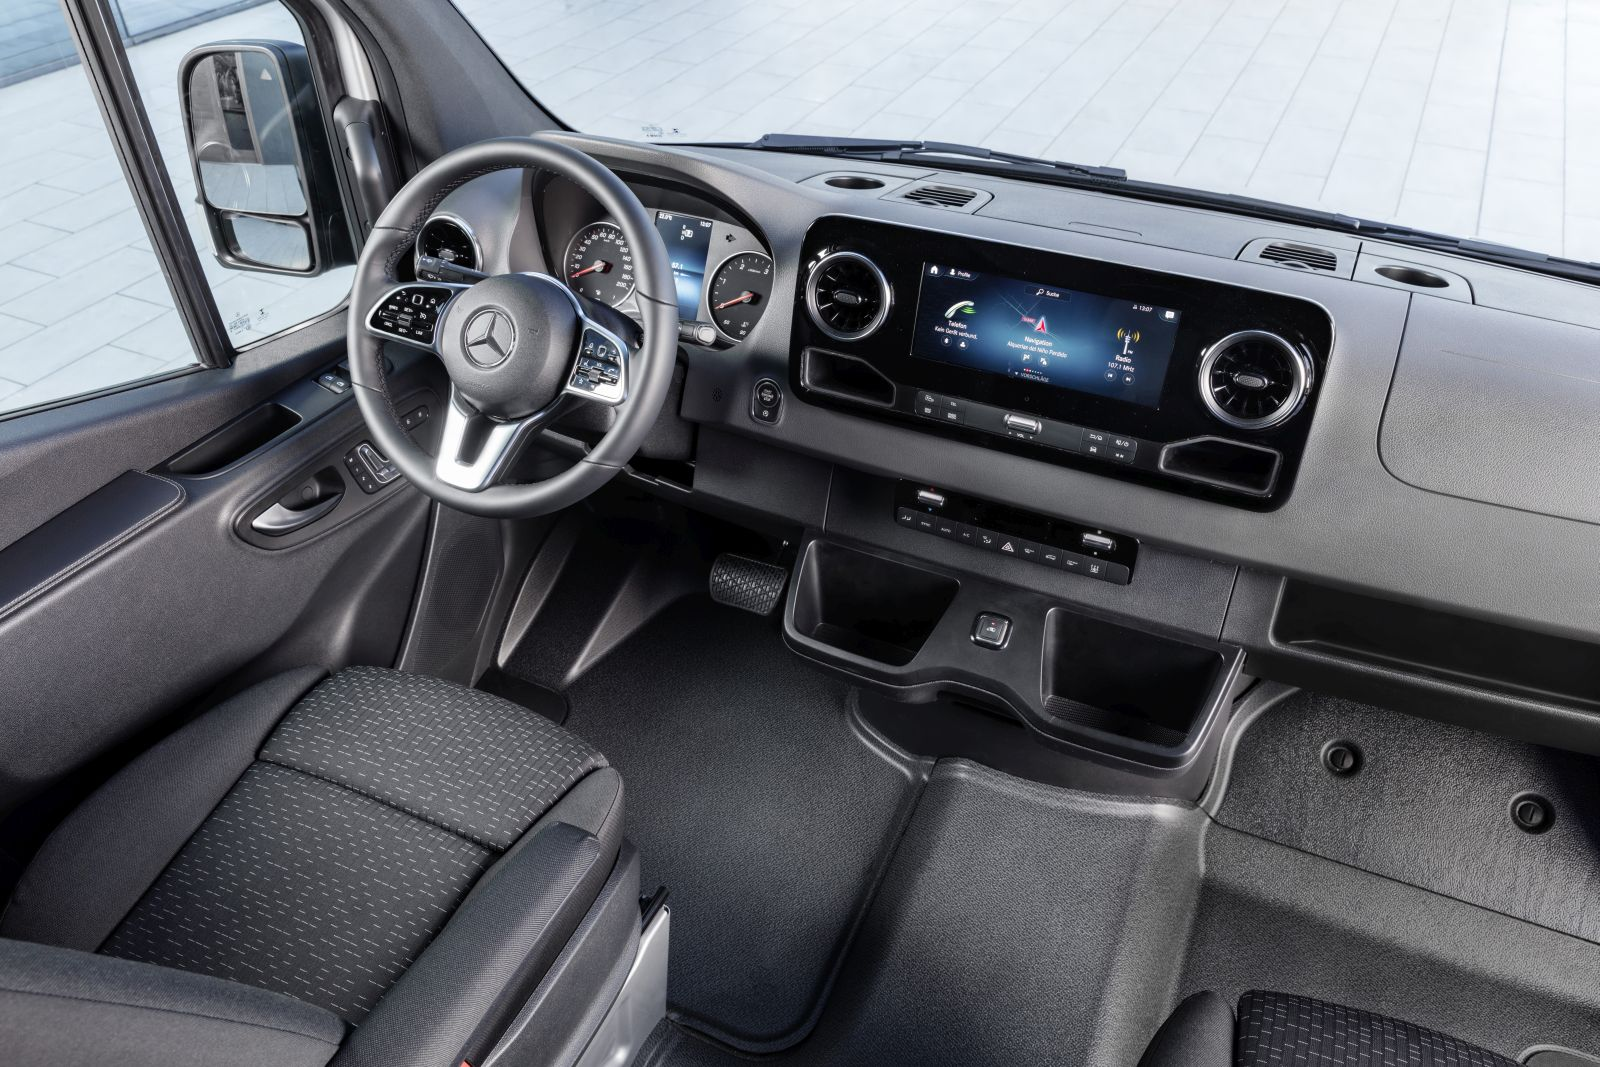 Mercedes Benz Sprinter 2018 Interieur